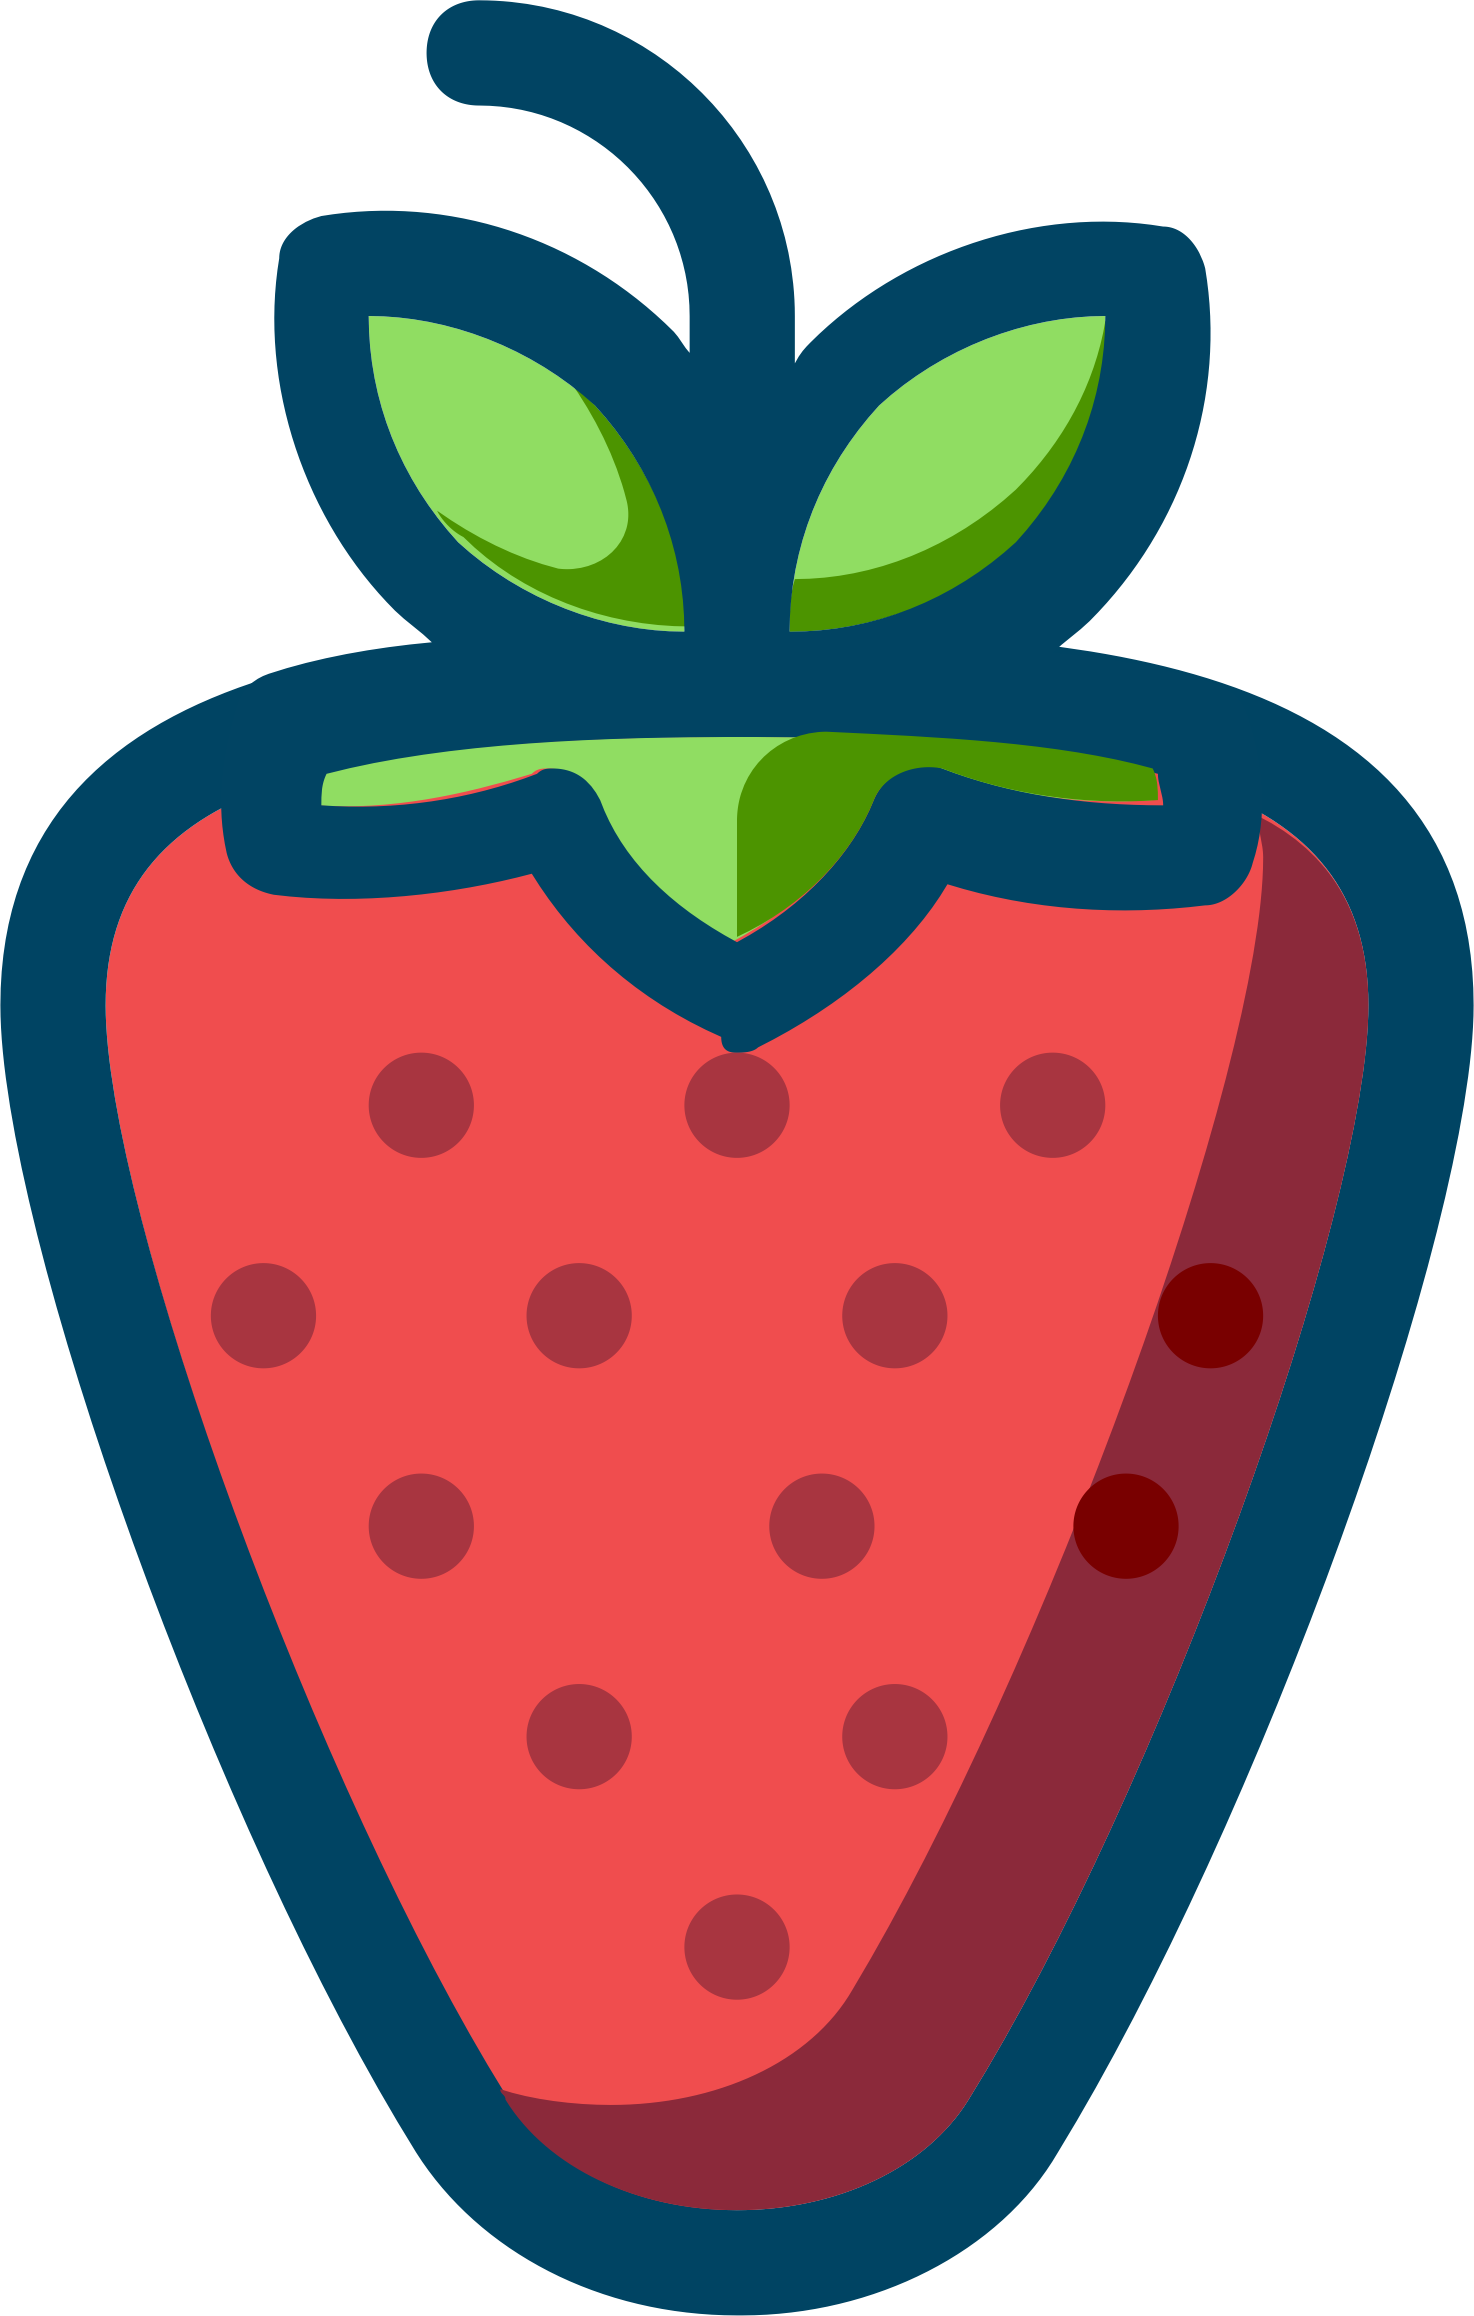 strawberry by cactus cowboy